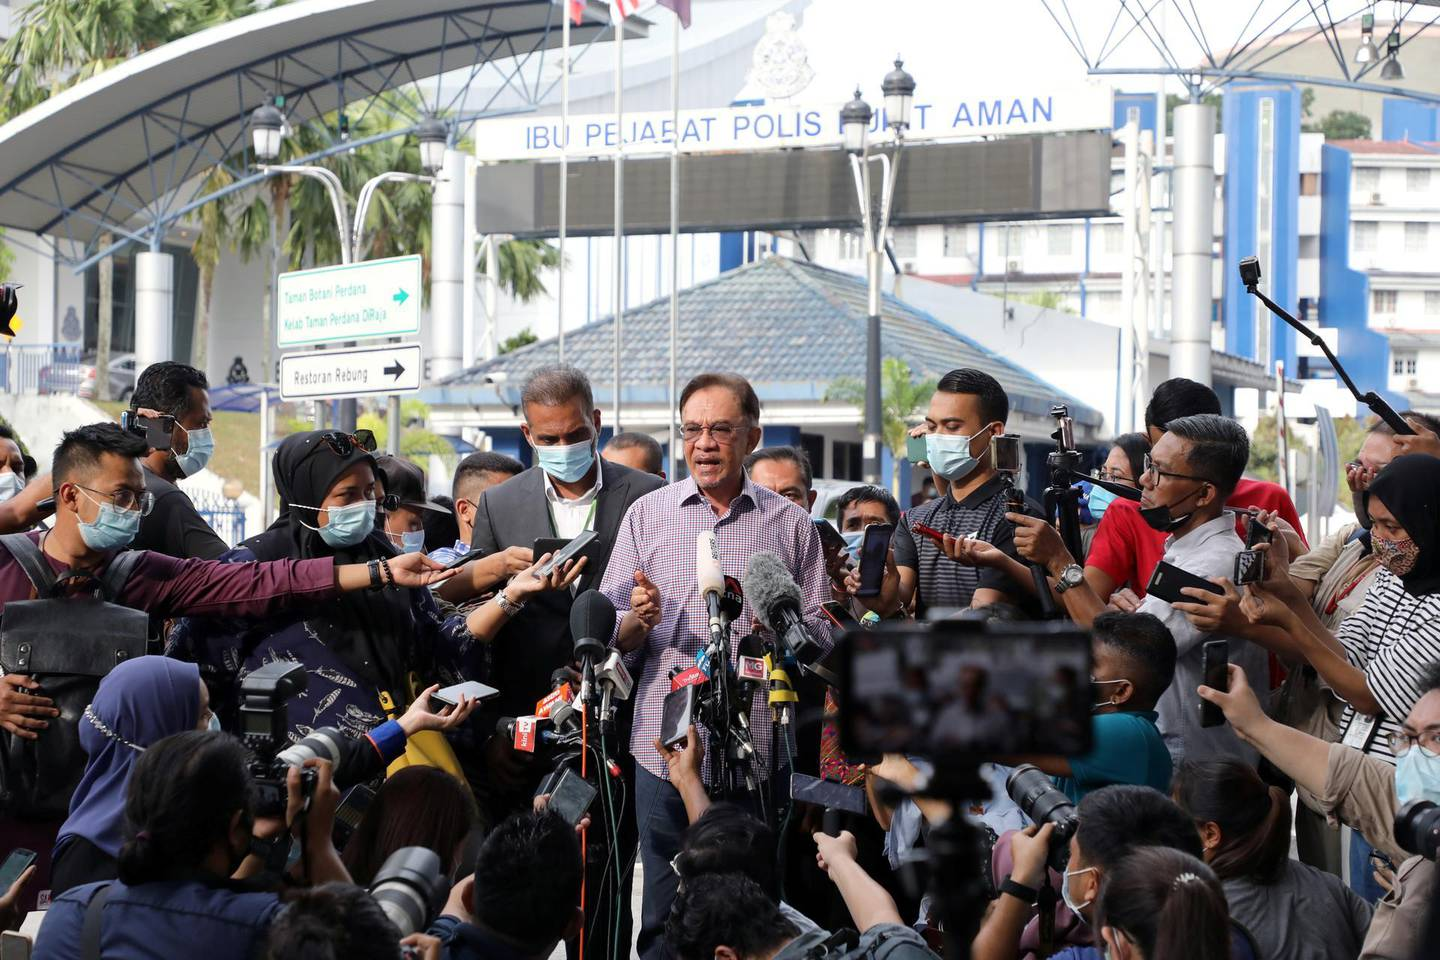 Malaysia opposition leader Anwar Ibrahim speaks to media members after being questioned by the Malaysian police over an investigation of a viral list of 121 federal lawmakers, allegedly backing his bid to take over the premiership from Muhyiddin Yassin, outside Bukit Aman police headquarters, in Kuala Lumpur, Malaysia October 16, 2020. REUTERS/Lim Huey Teng